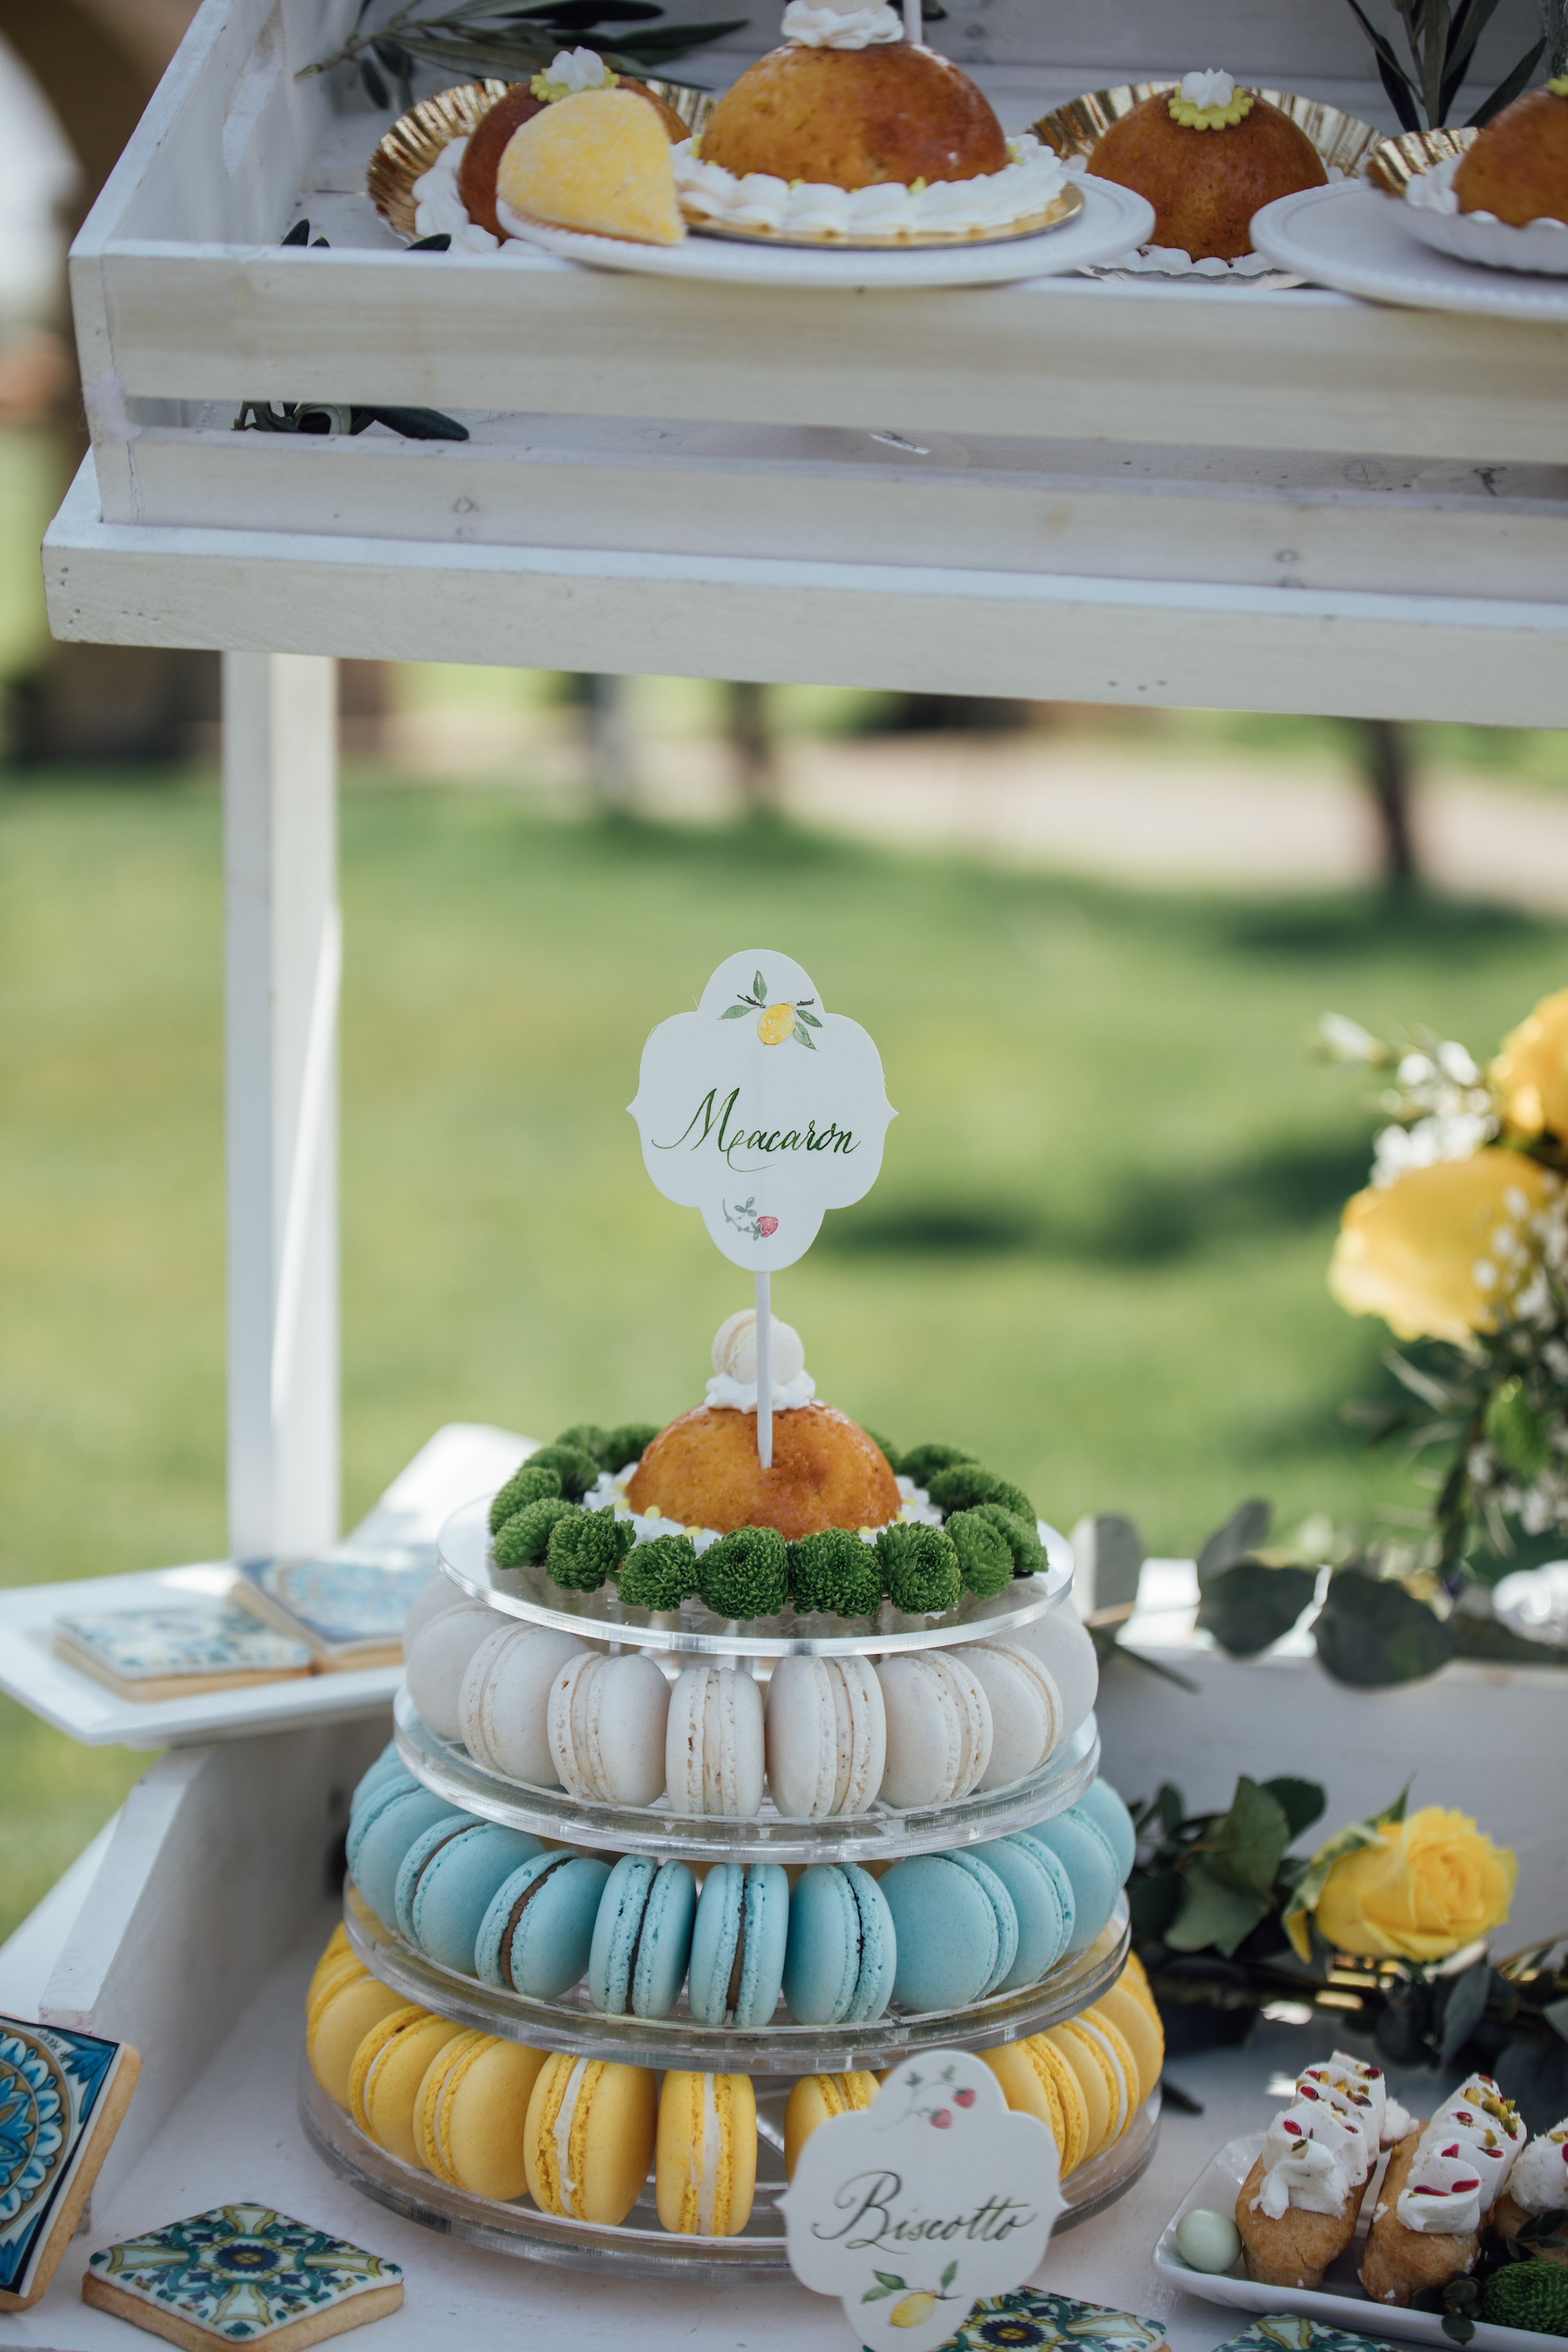 Macaron wedding cake tower from a Lemon Yellow Garden Wedding Styled Shoot in Rome Italy - by Jess Palatucci Photography - as seen on www.BrendasWeddingBlog.com